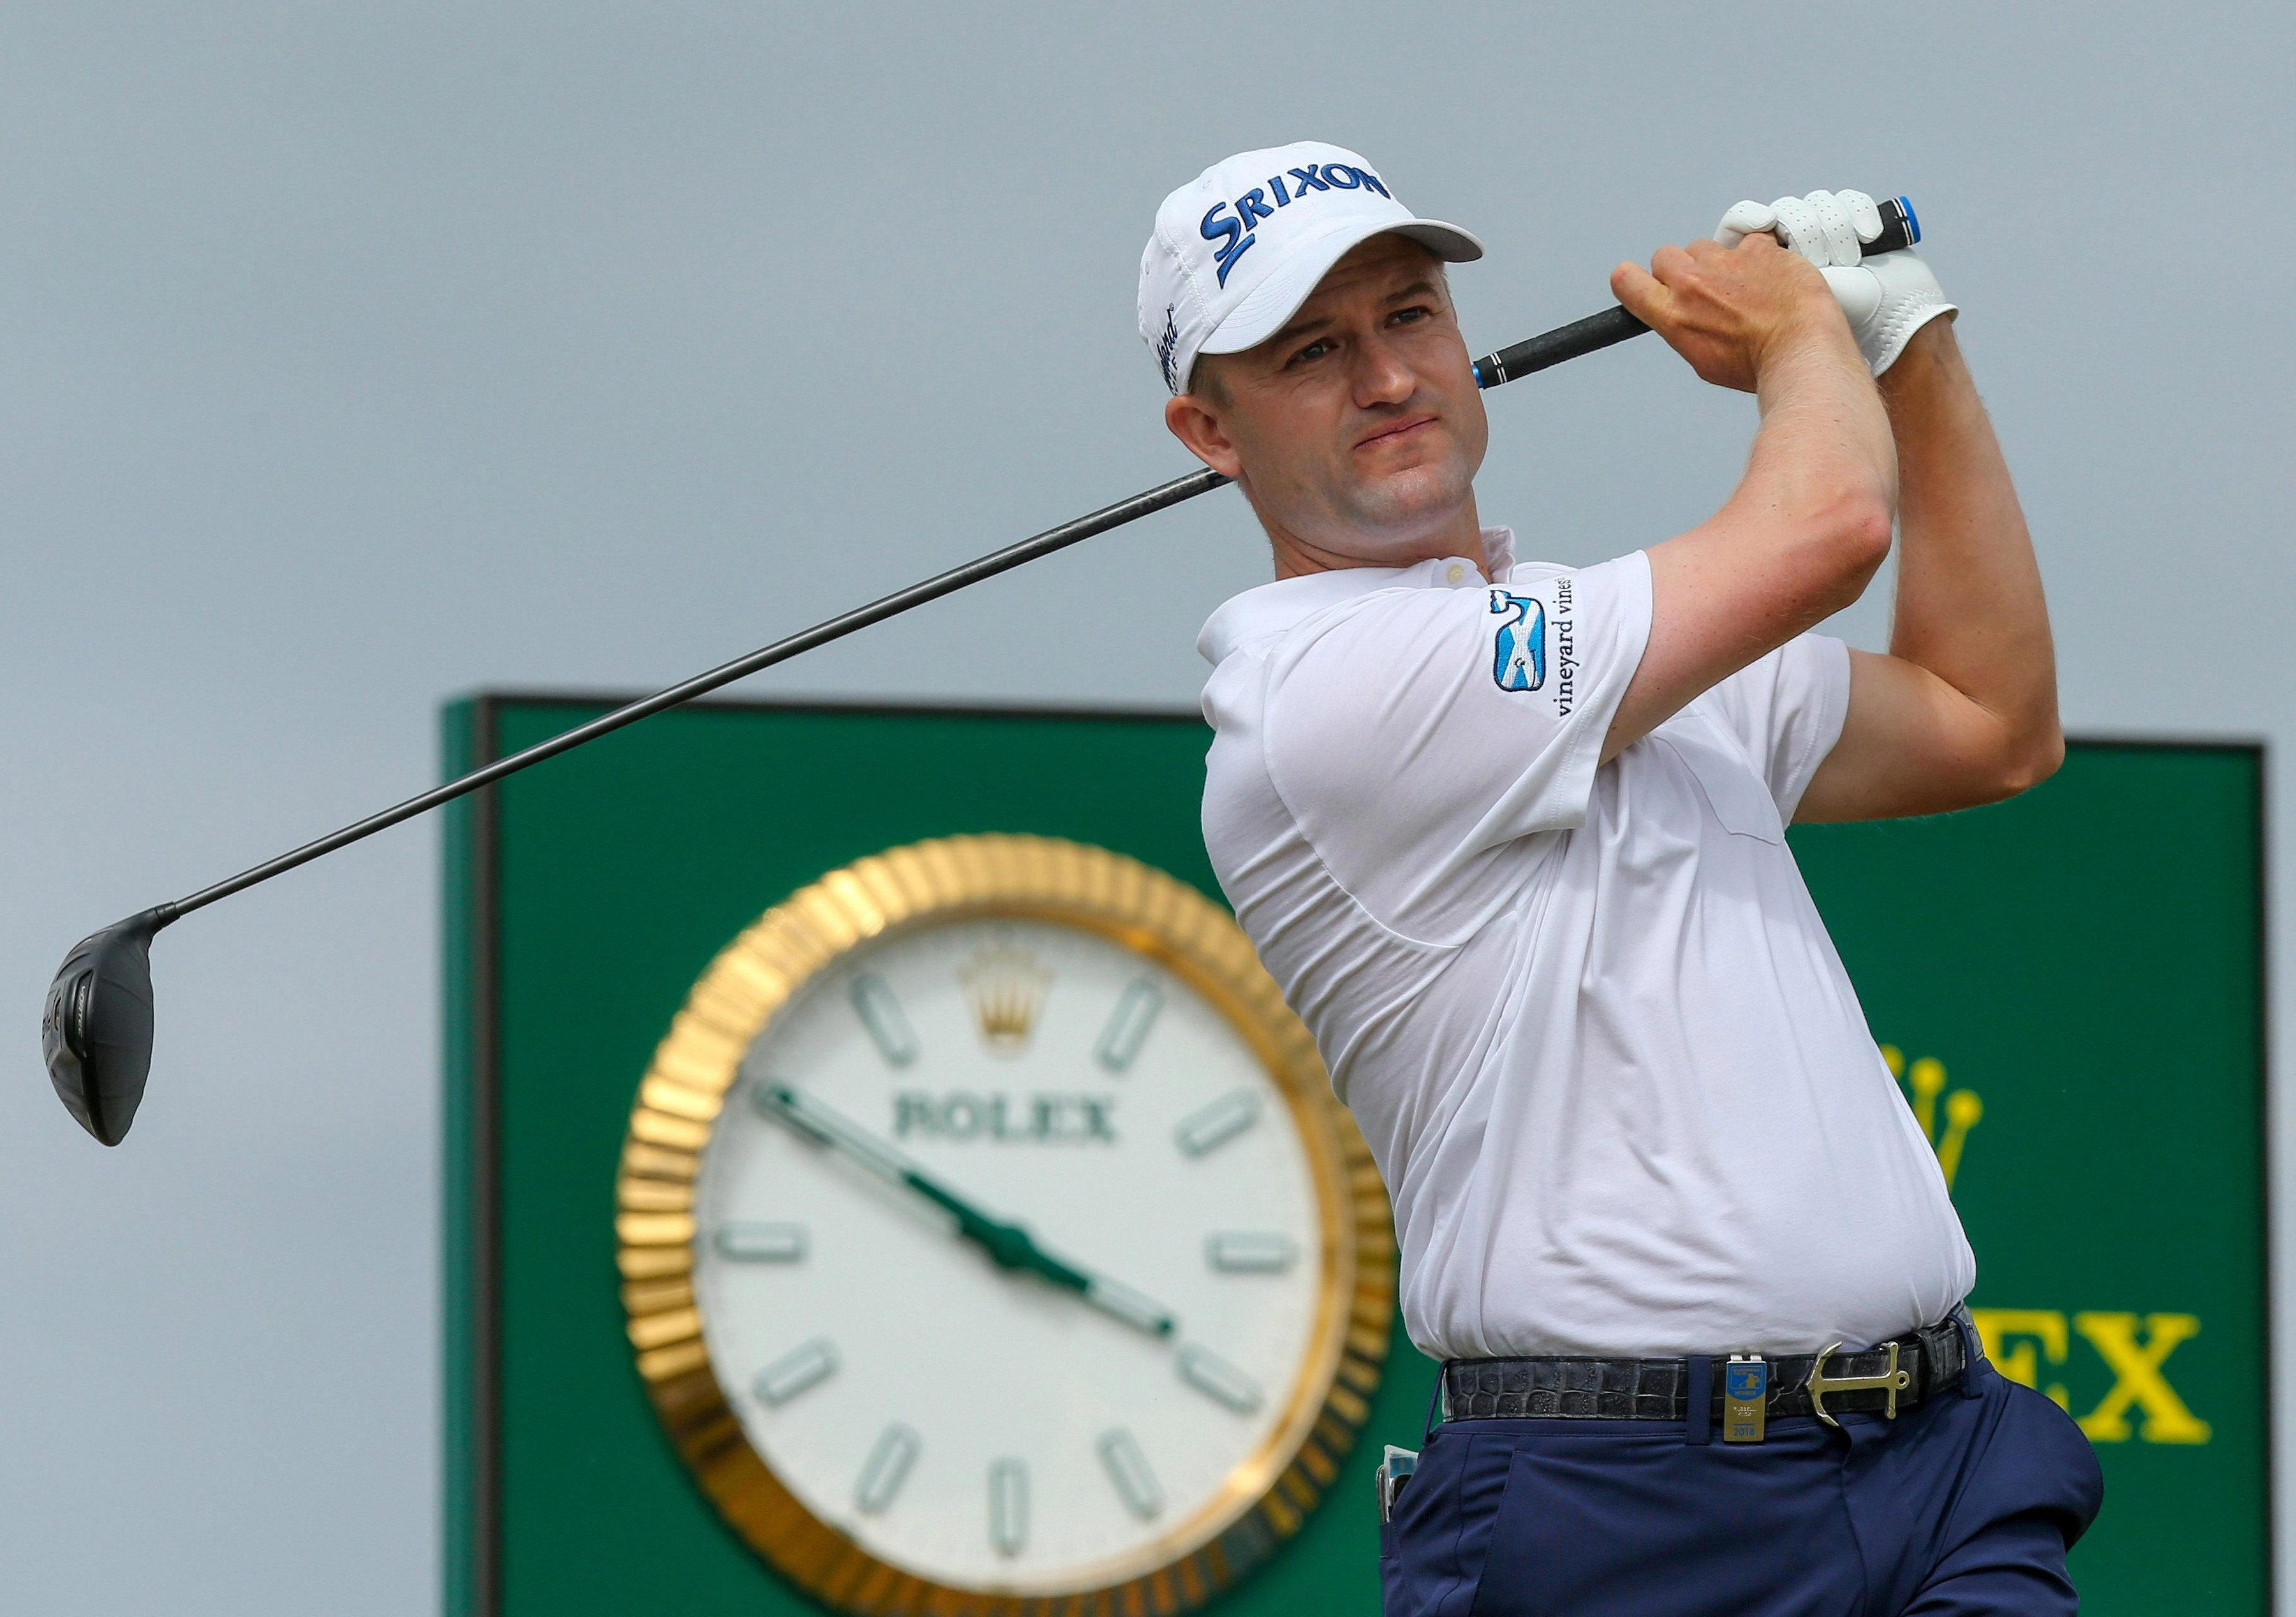 Knox will go into next week's Scottish Open in formidable form